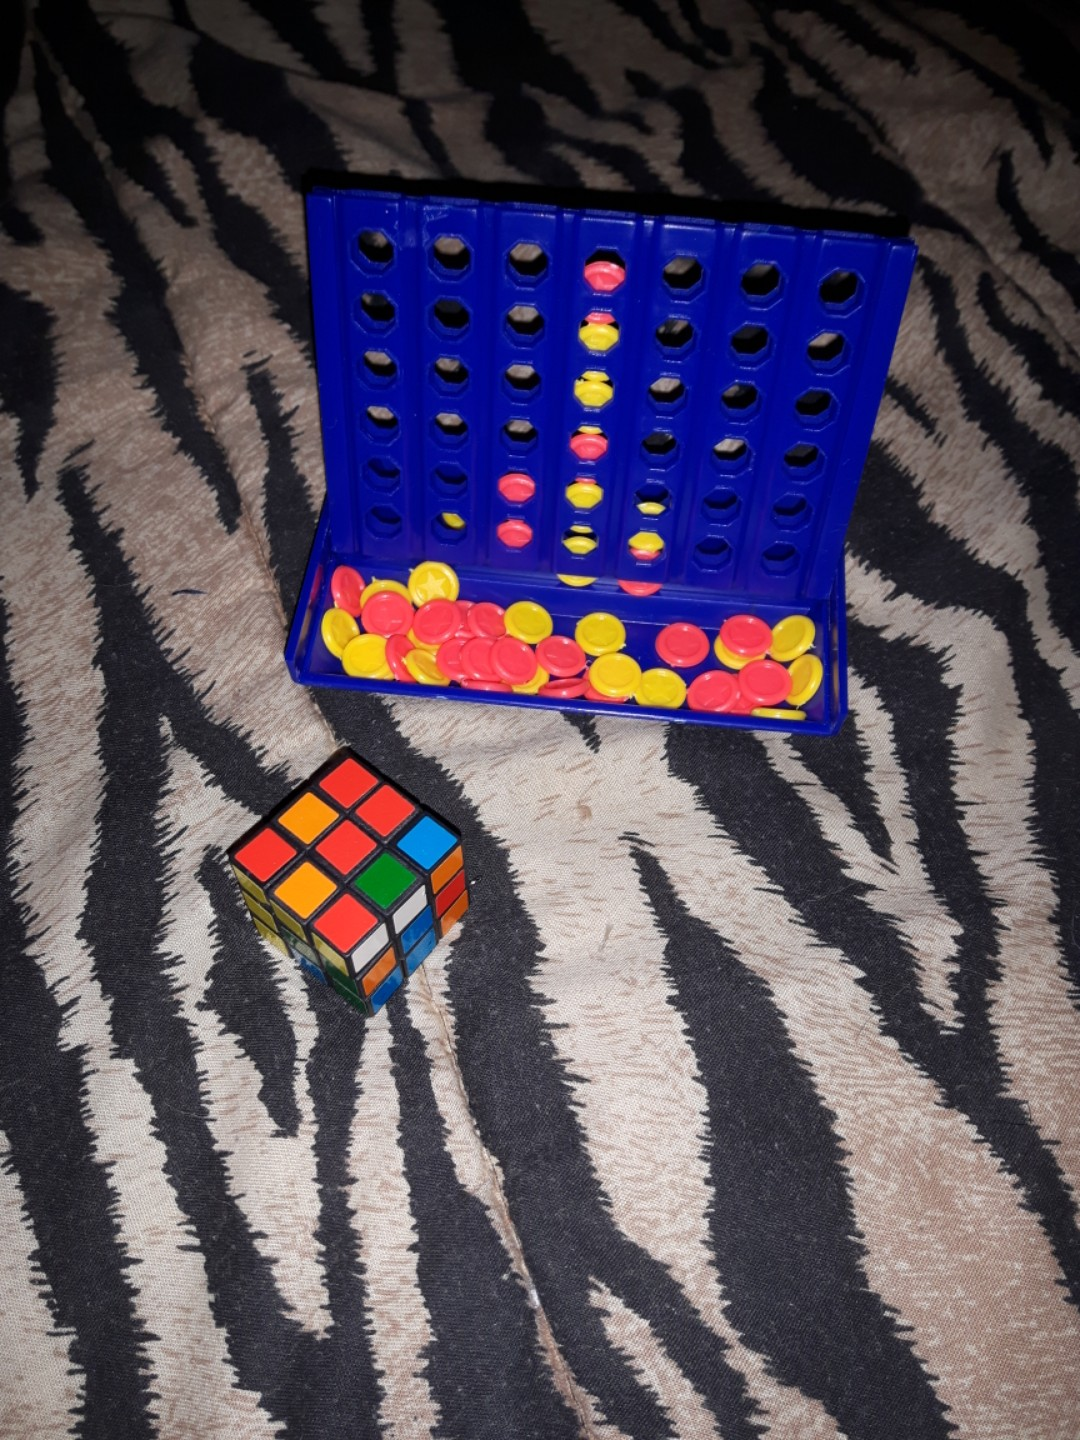 Travel game size - Arubic cube & connect 4